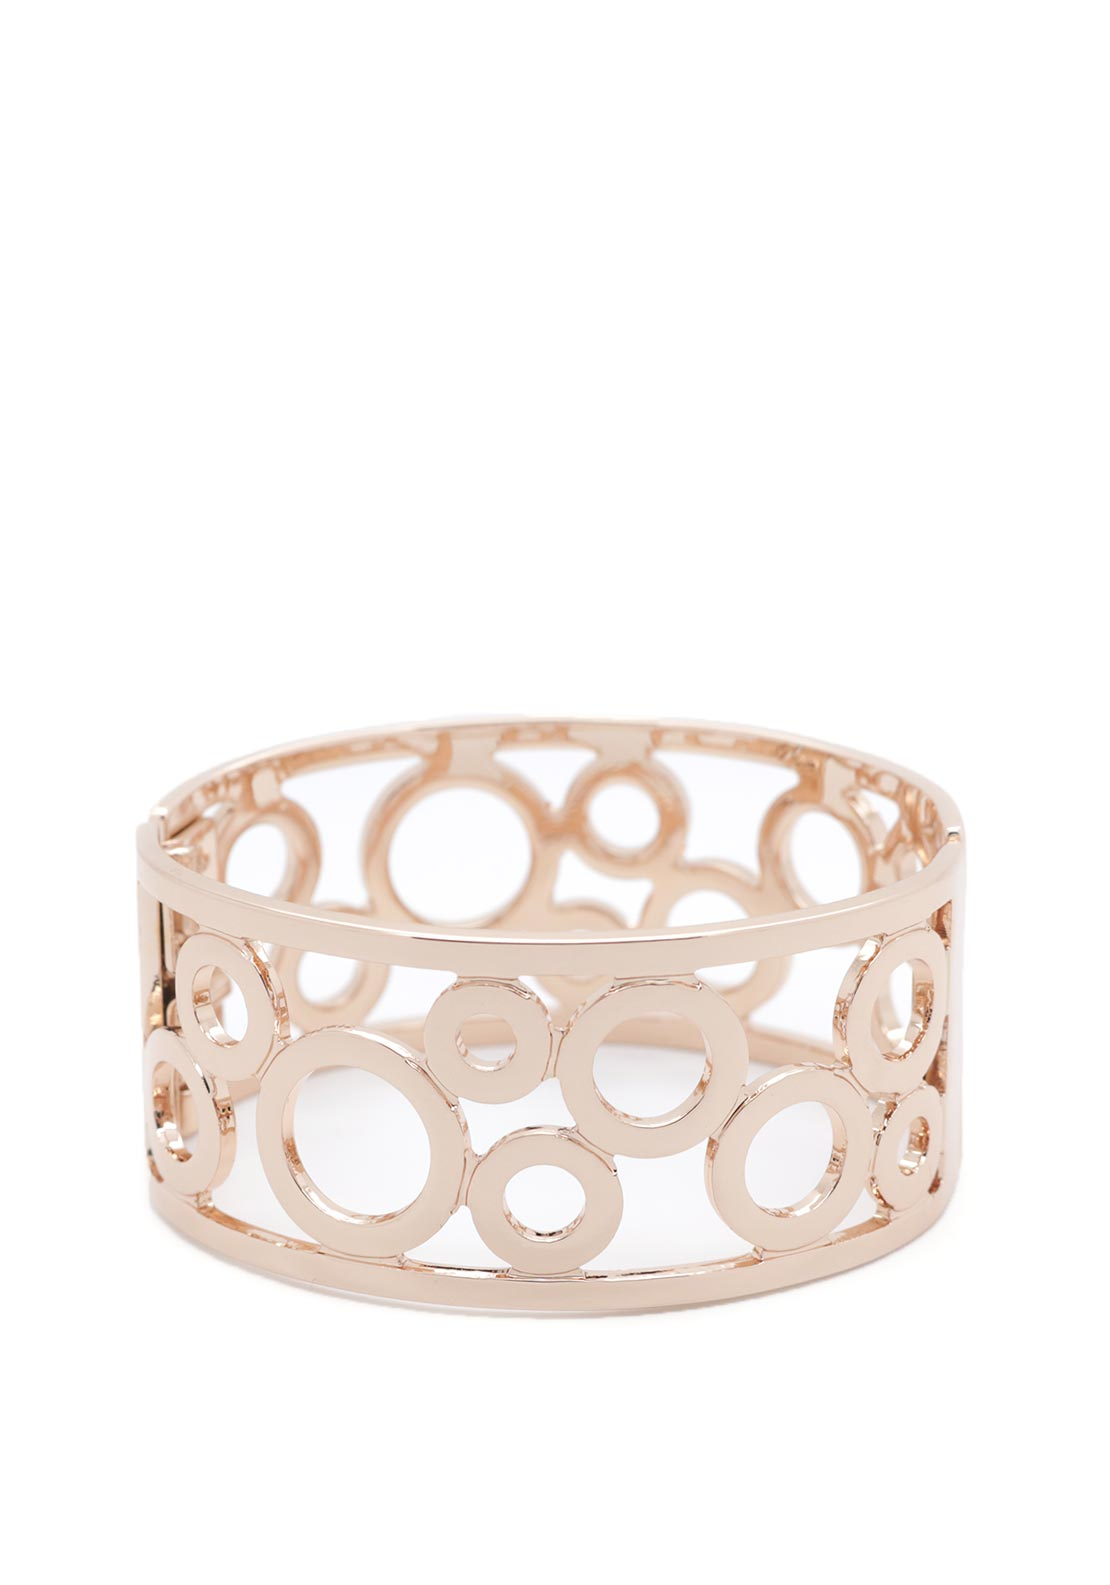 Absolute Cuff Bangle, Rose Gold